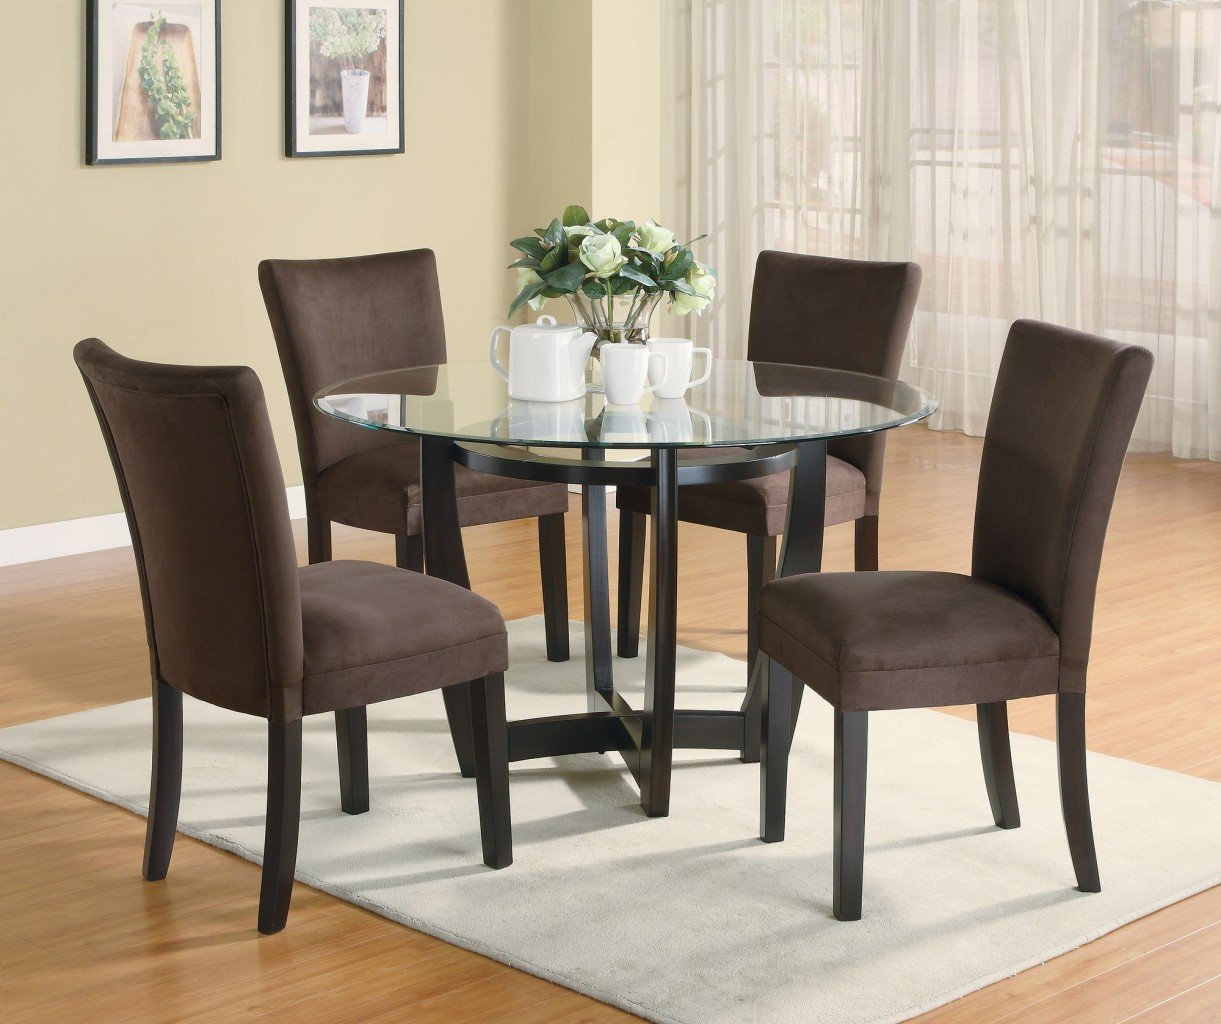 Make A Dining Room Table: Cheap Dining Room Table Sets